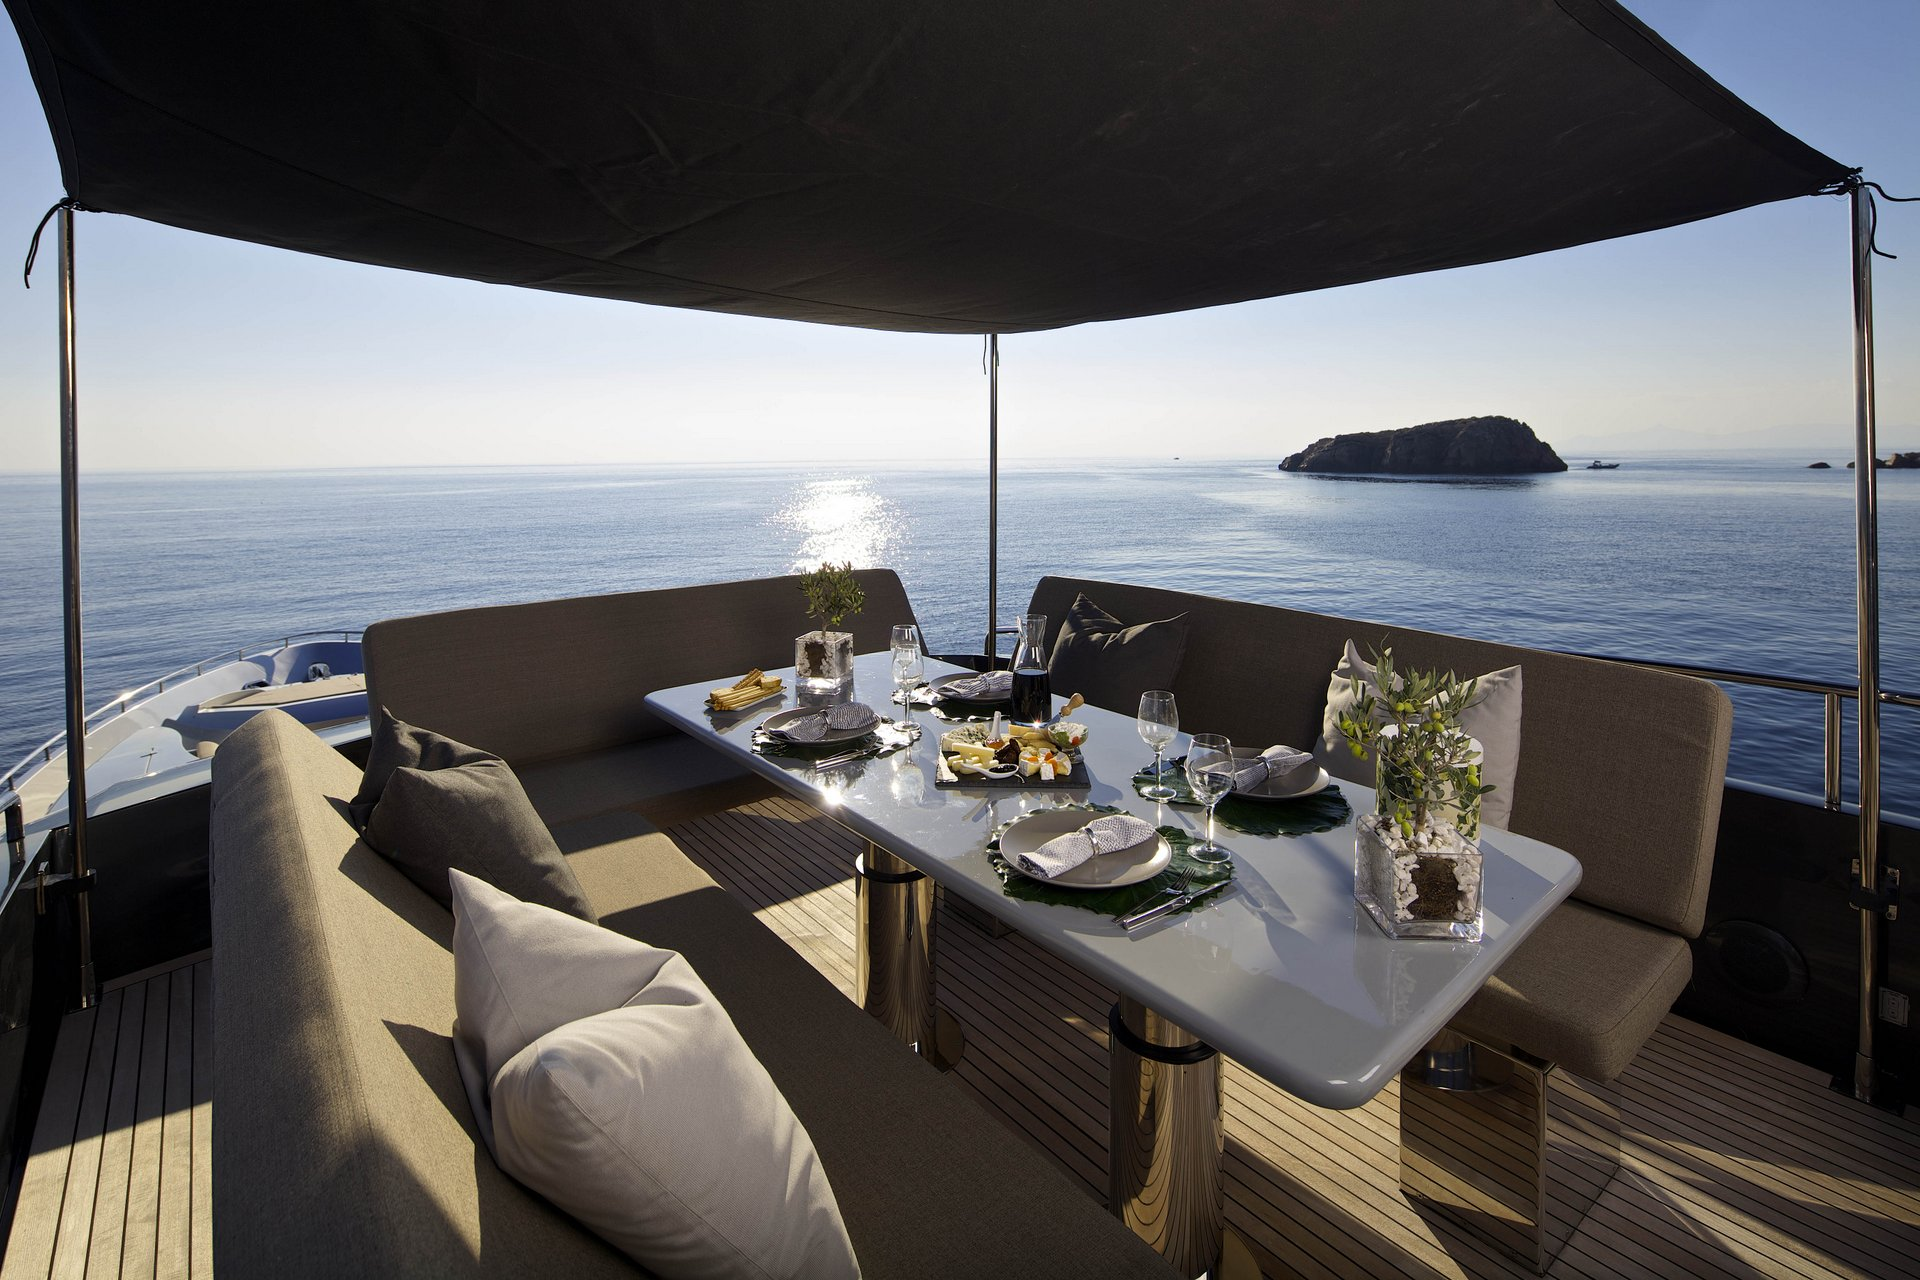 M/Y SOLARIS yacht for charter alfresco dining